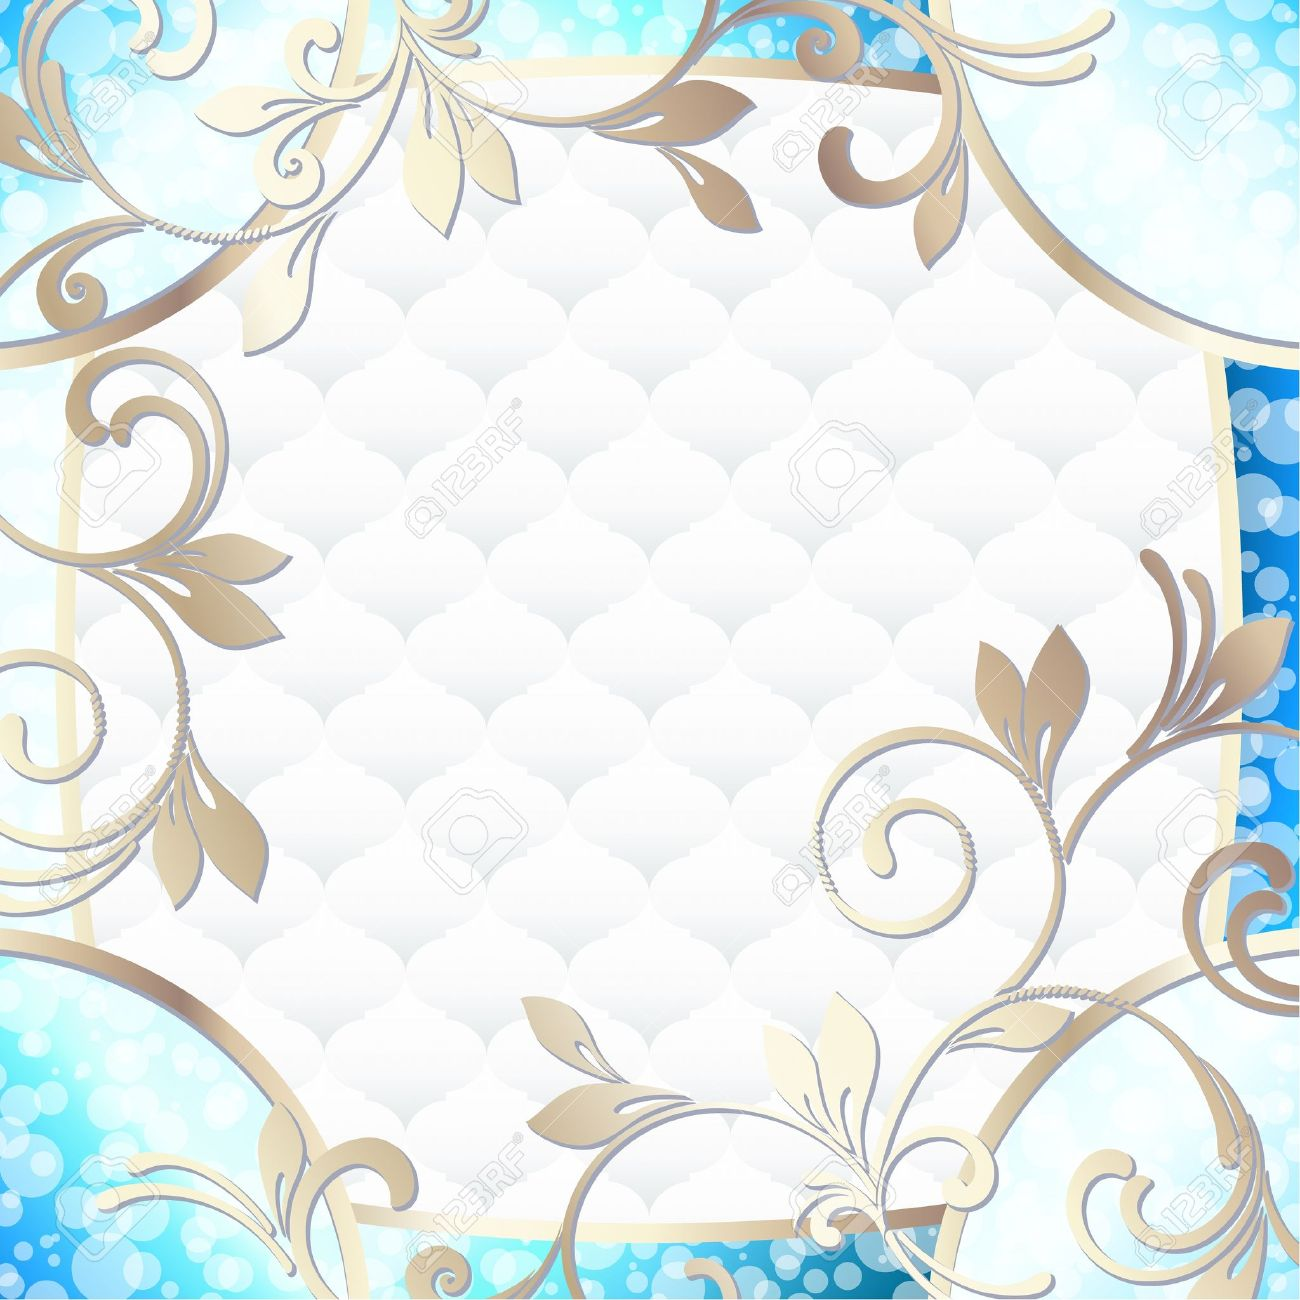 Elegant bright blue frame inspired by Rococo era designs  Graphics are grouped and in several layers for easy editing  The file can be scaled to any size Stock Vector - 14557975